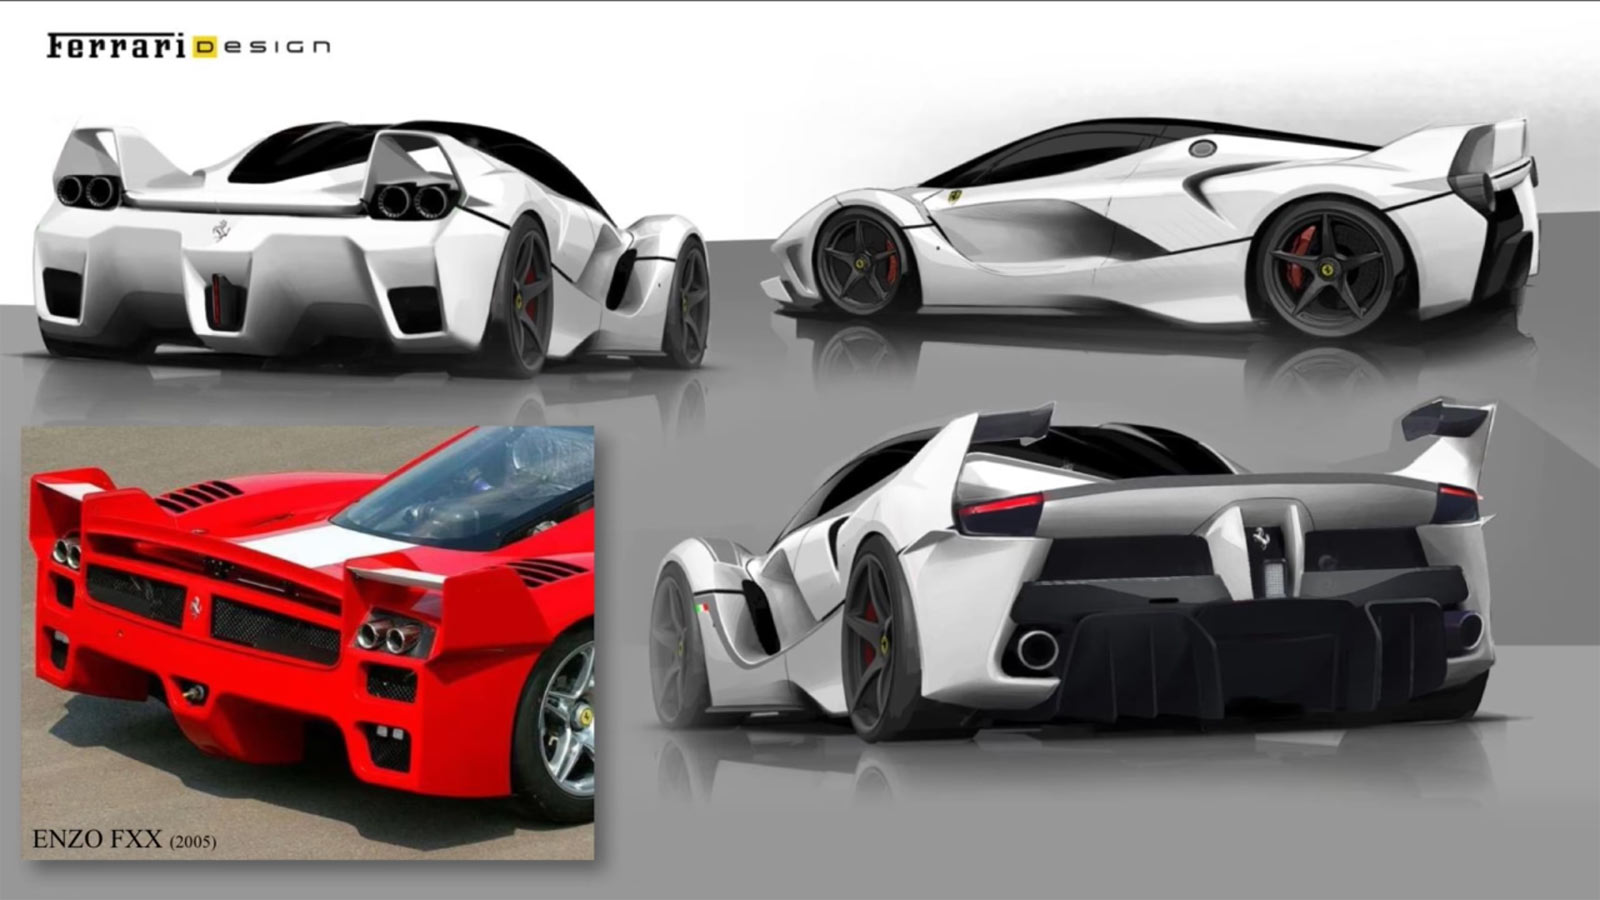 Ferrari Fxx K Design Sketch Renders And Enzo Rear End Comparison Car Body Design